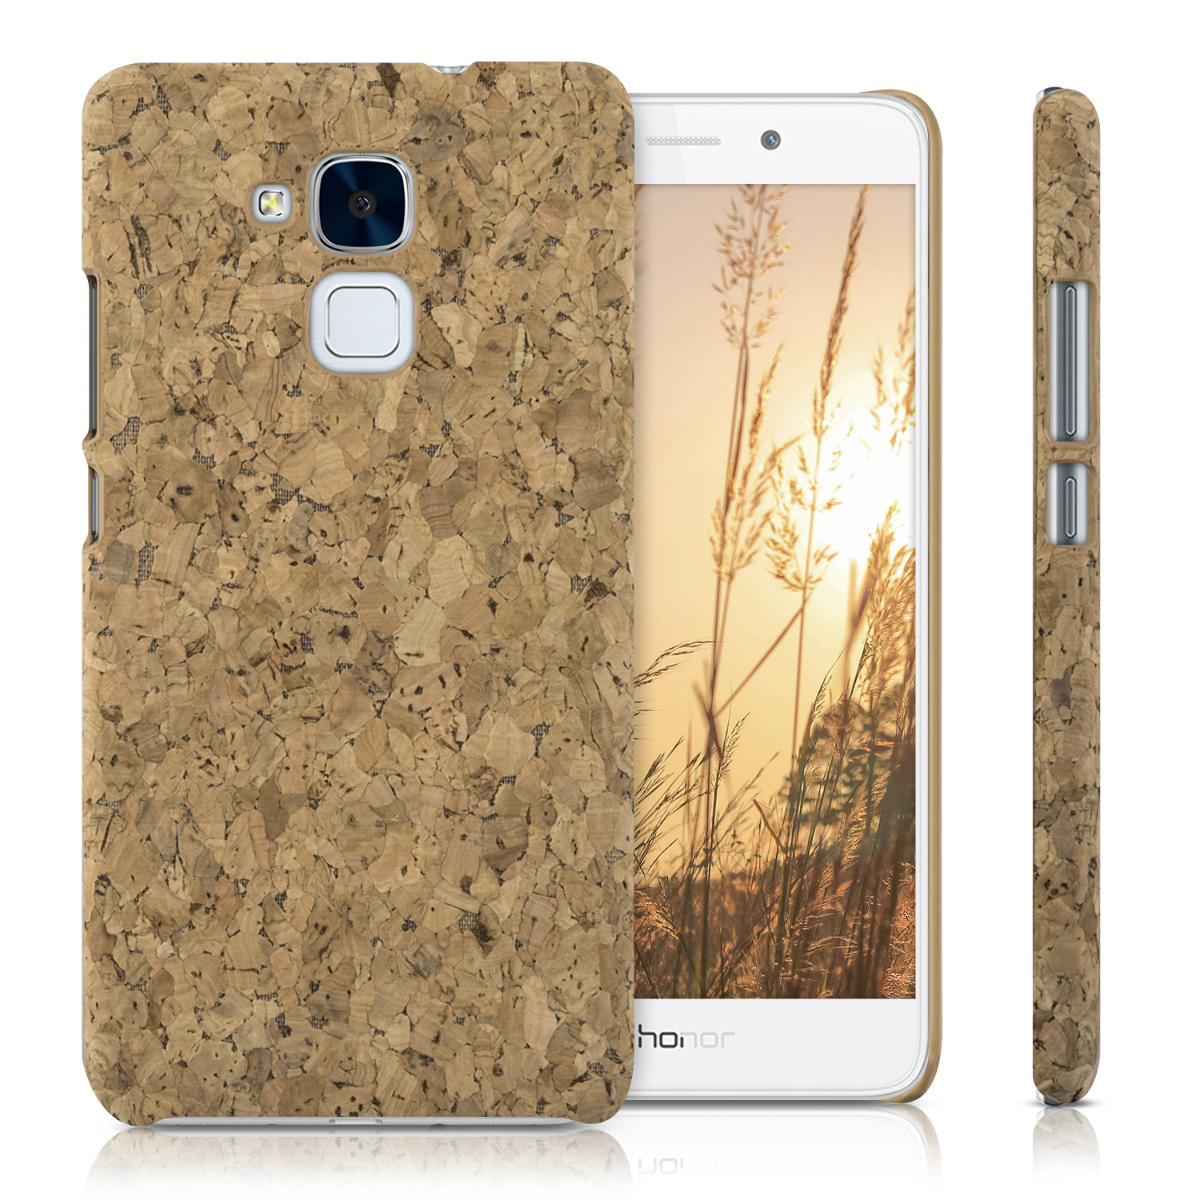 kwmobile-COQUE-DURE-AVEC-LIEGE-POUR-HUAWEI-HONOR-5C-COVER-HOUSSE-PROTECTION